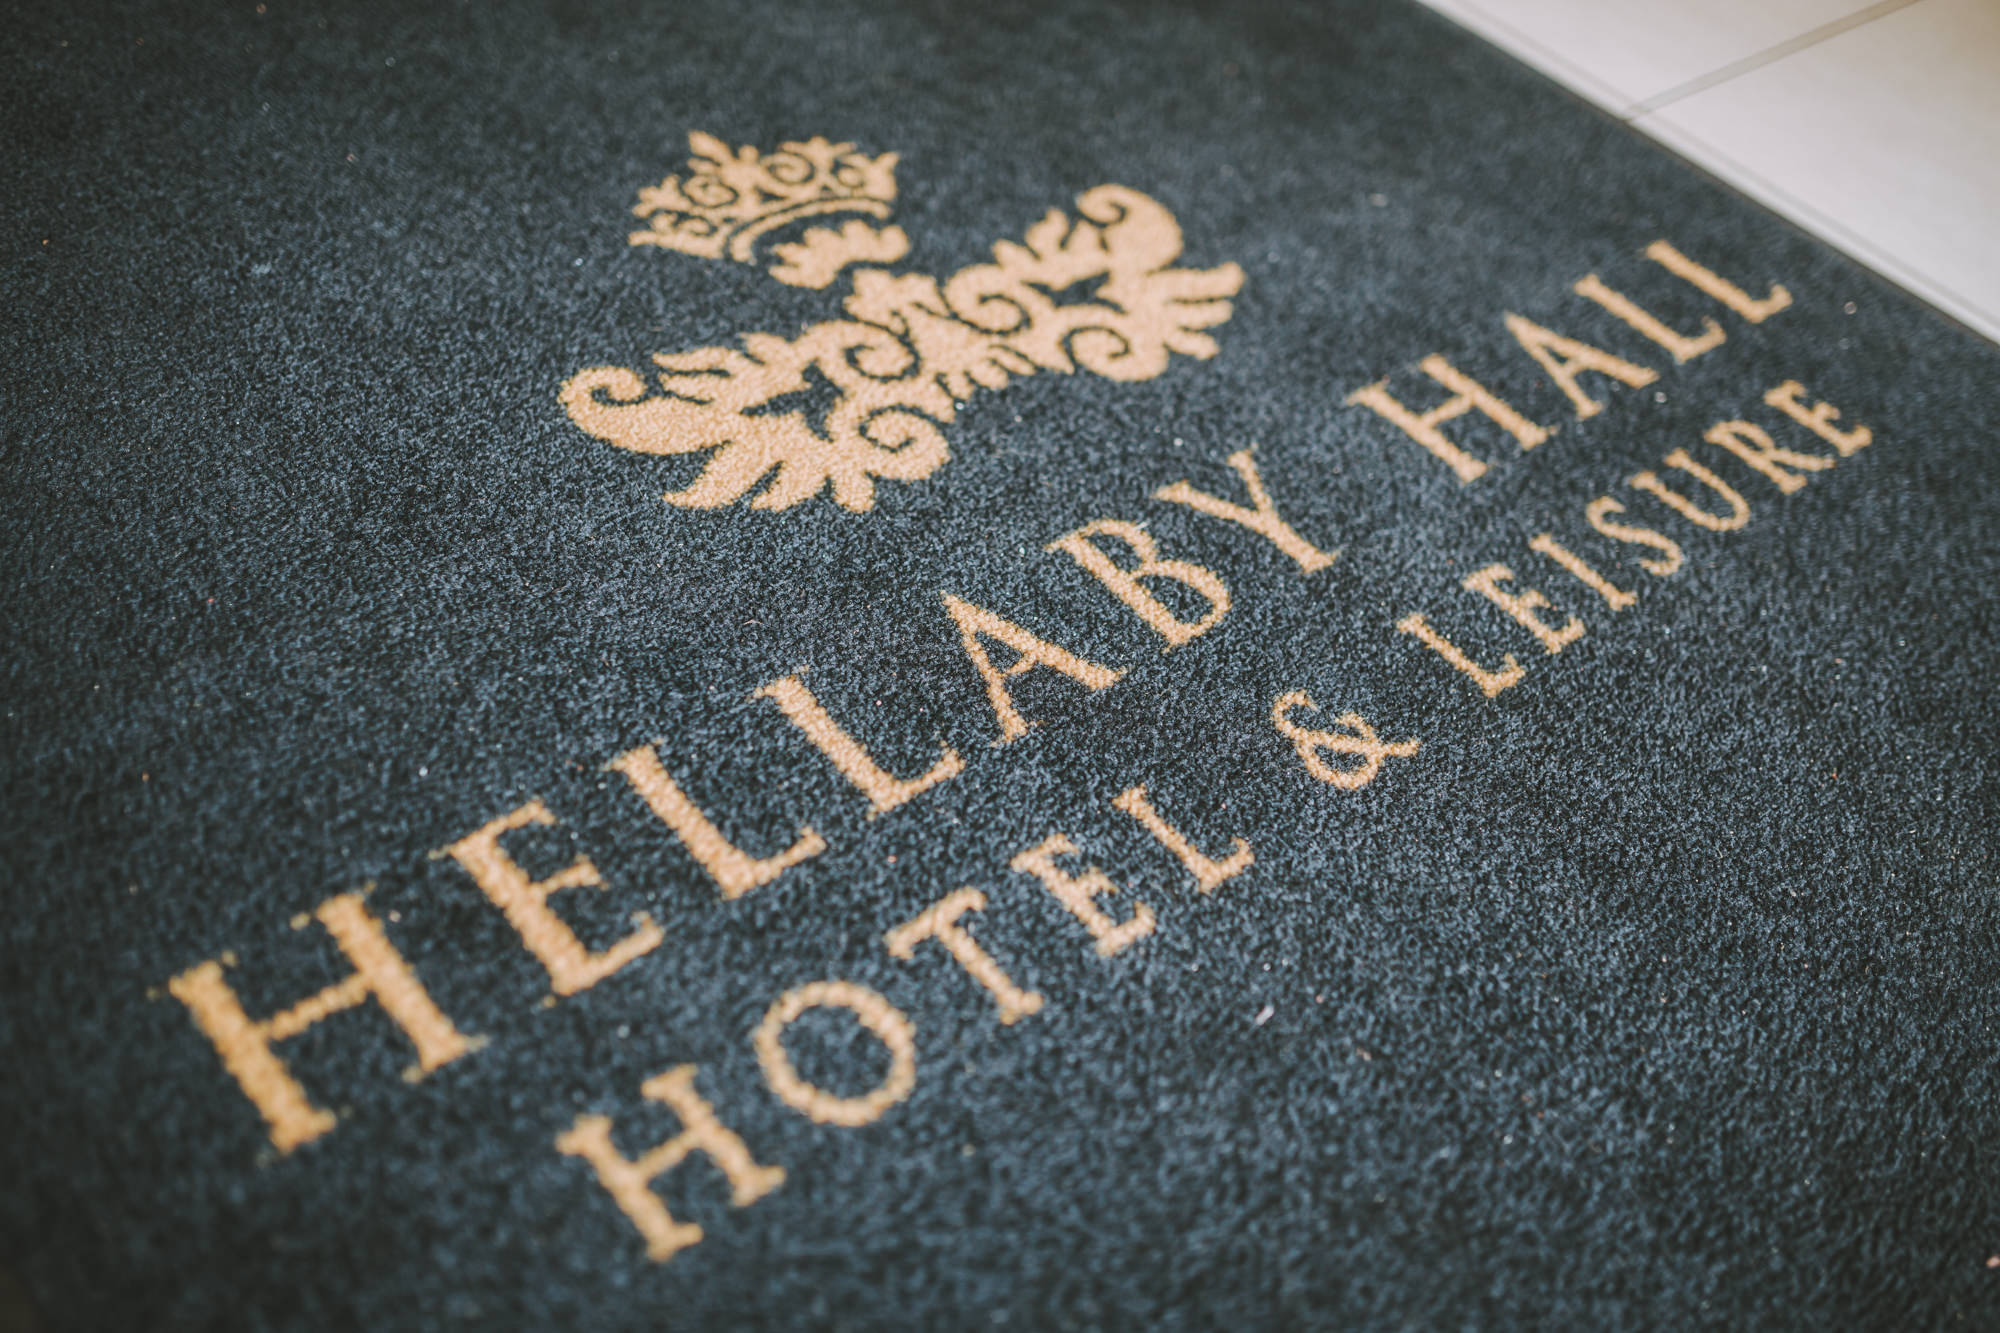 hellaby hall wedding photographers in rotherham, yorkshire-1.jpg